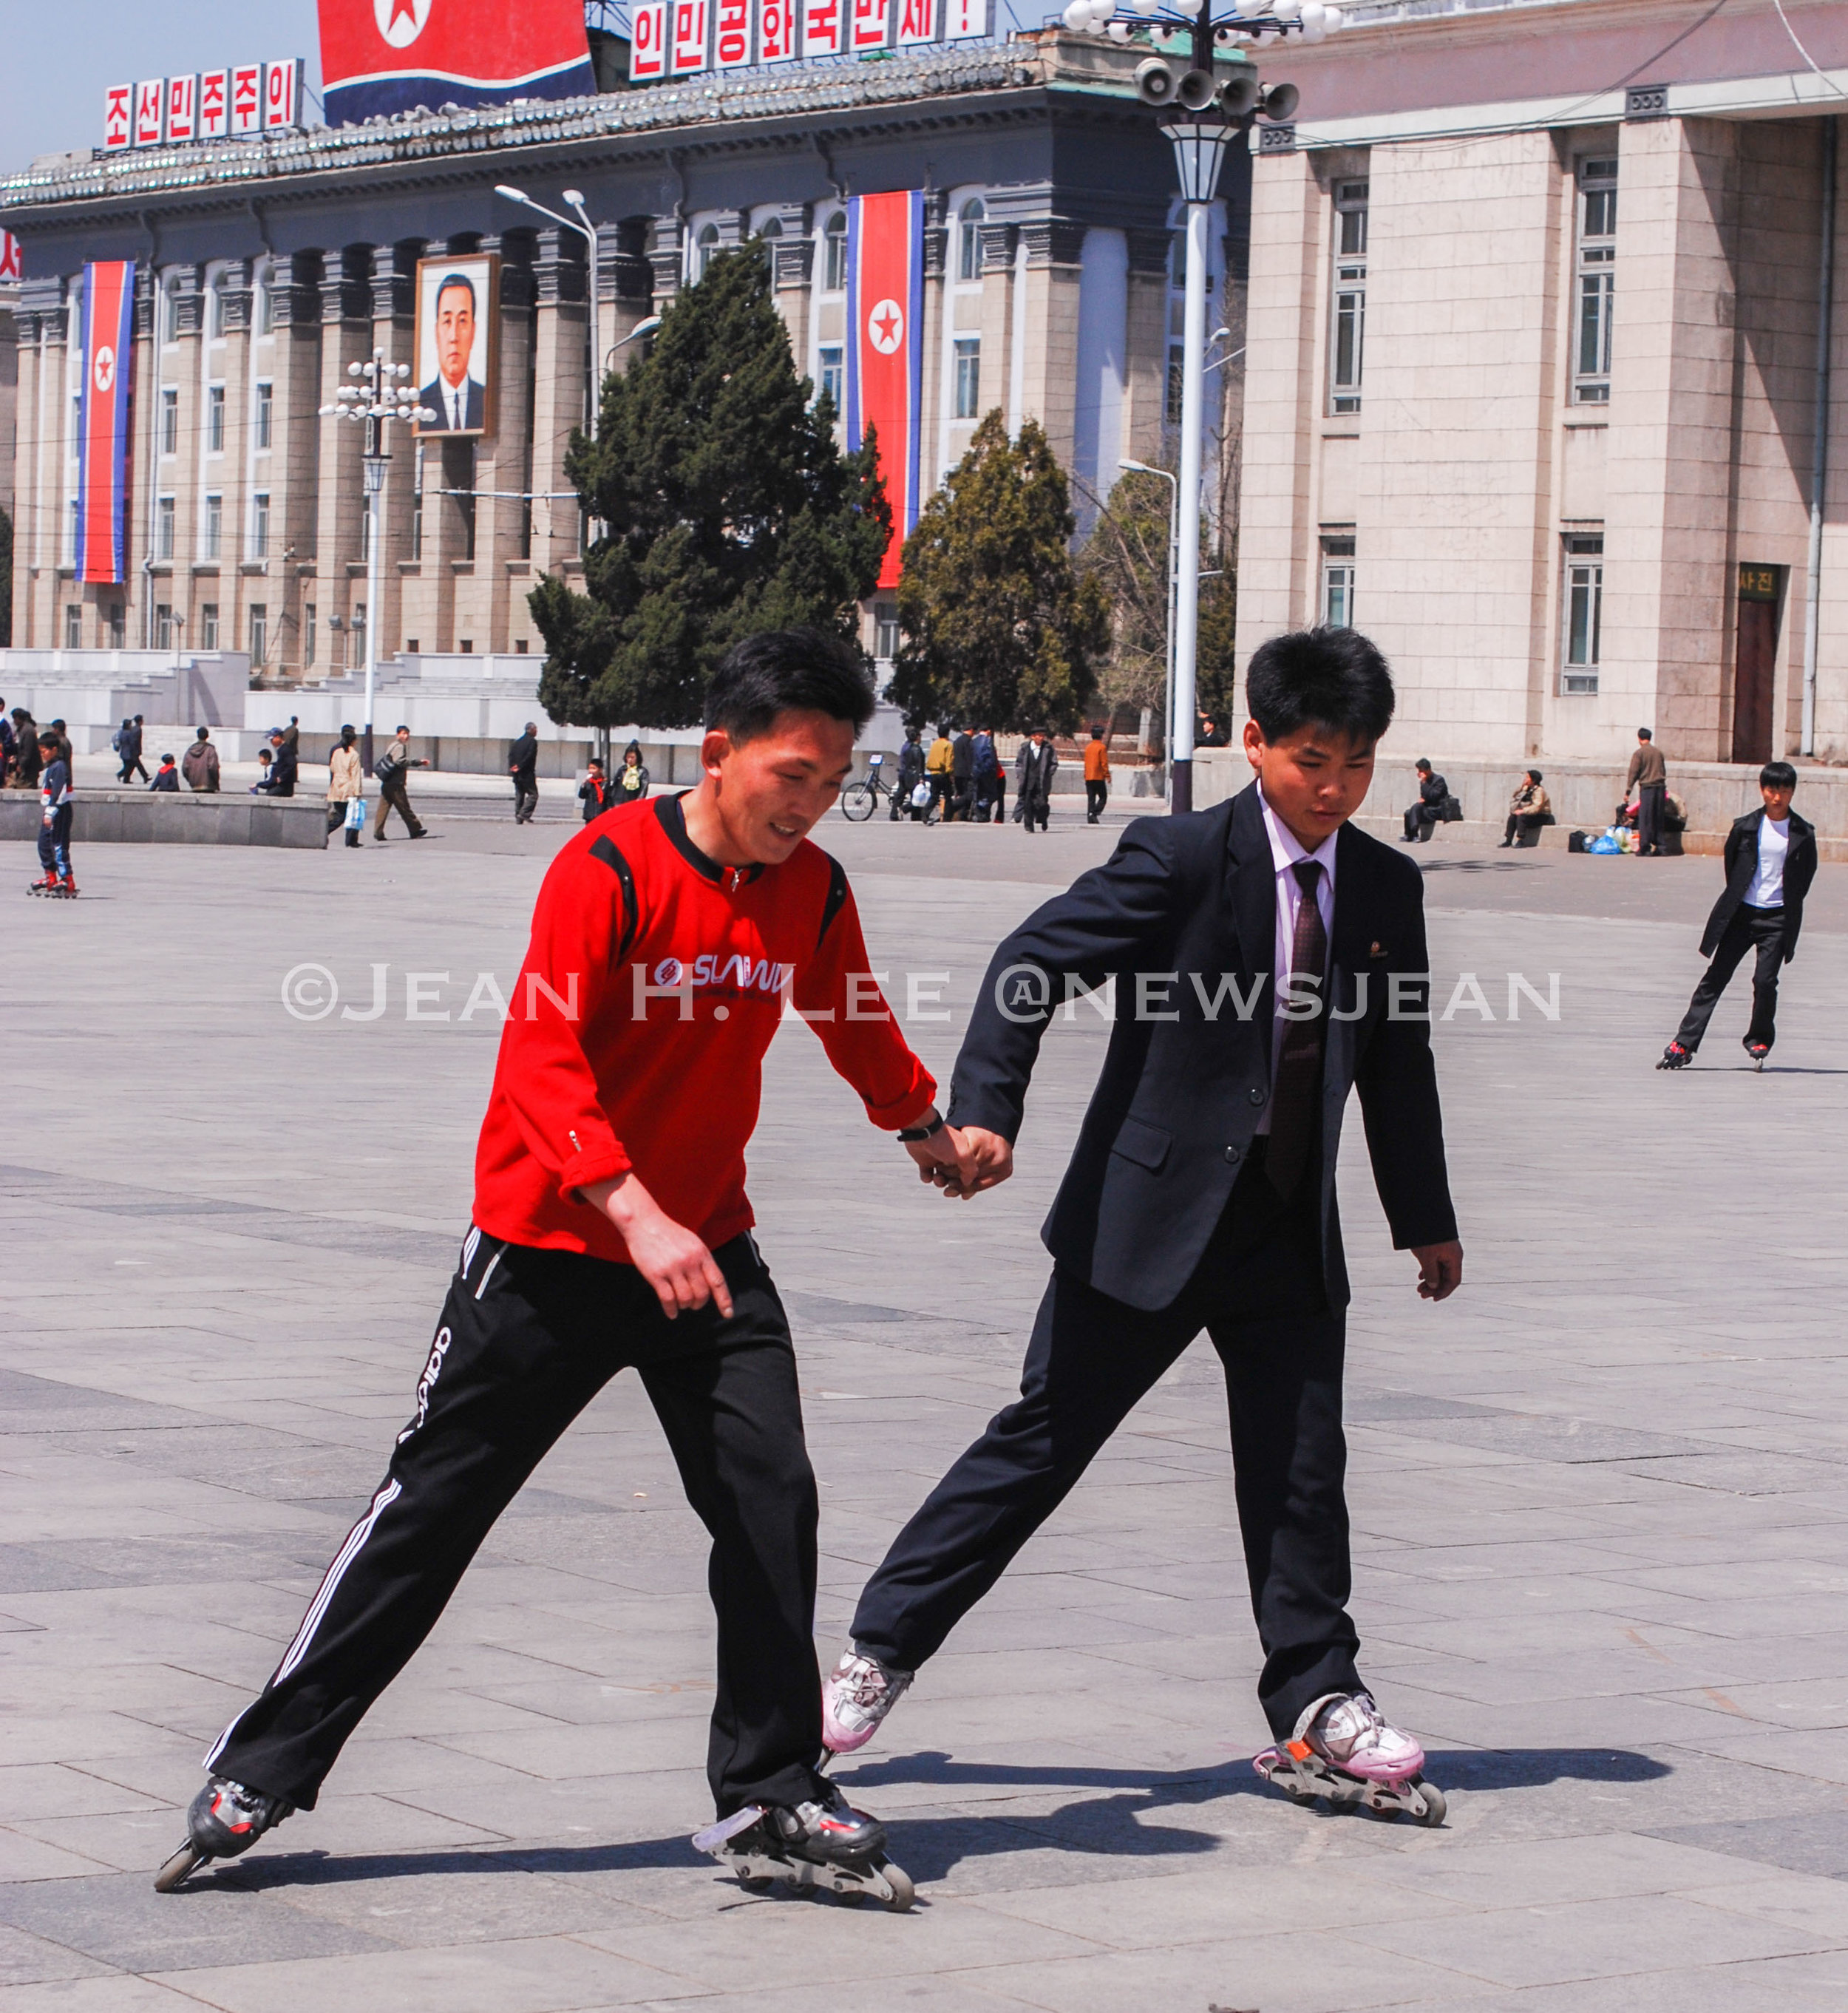 North Koreans inline skating on Kim Il Sung Square in Pyongyang. Photo credit: Jean H. Lee. All Rights Reserved.